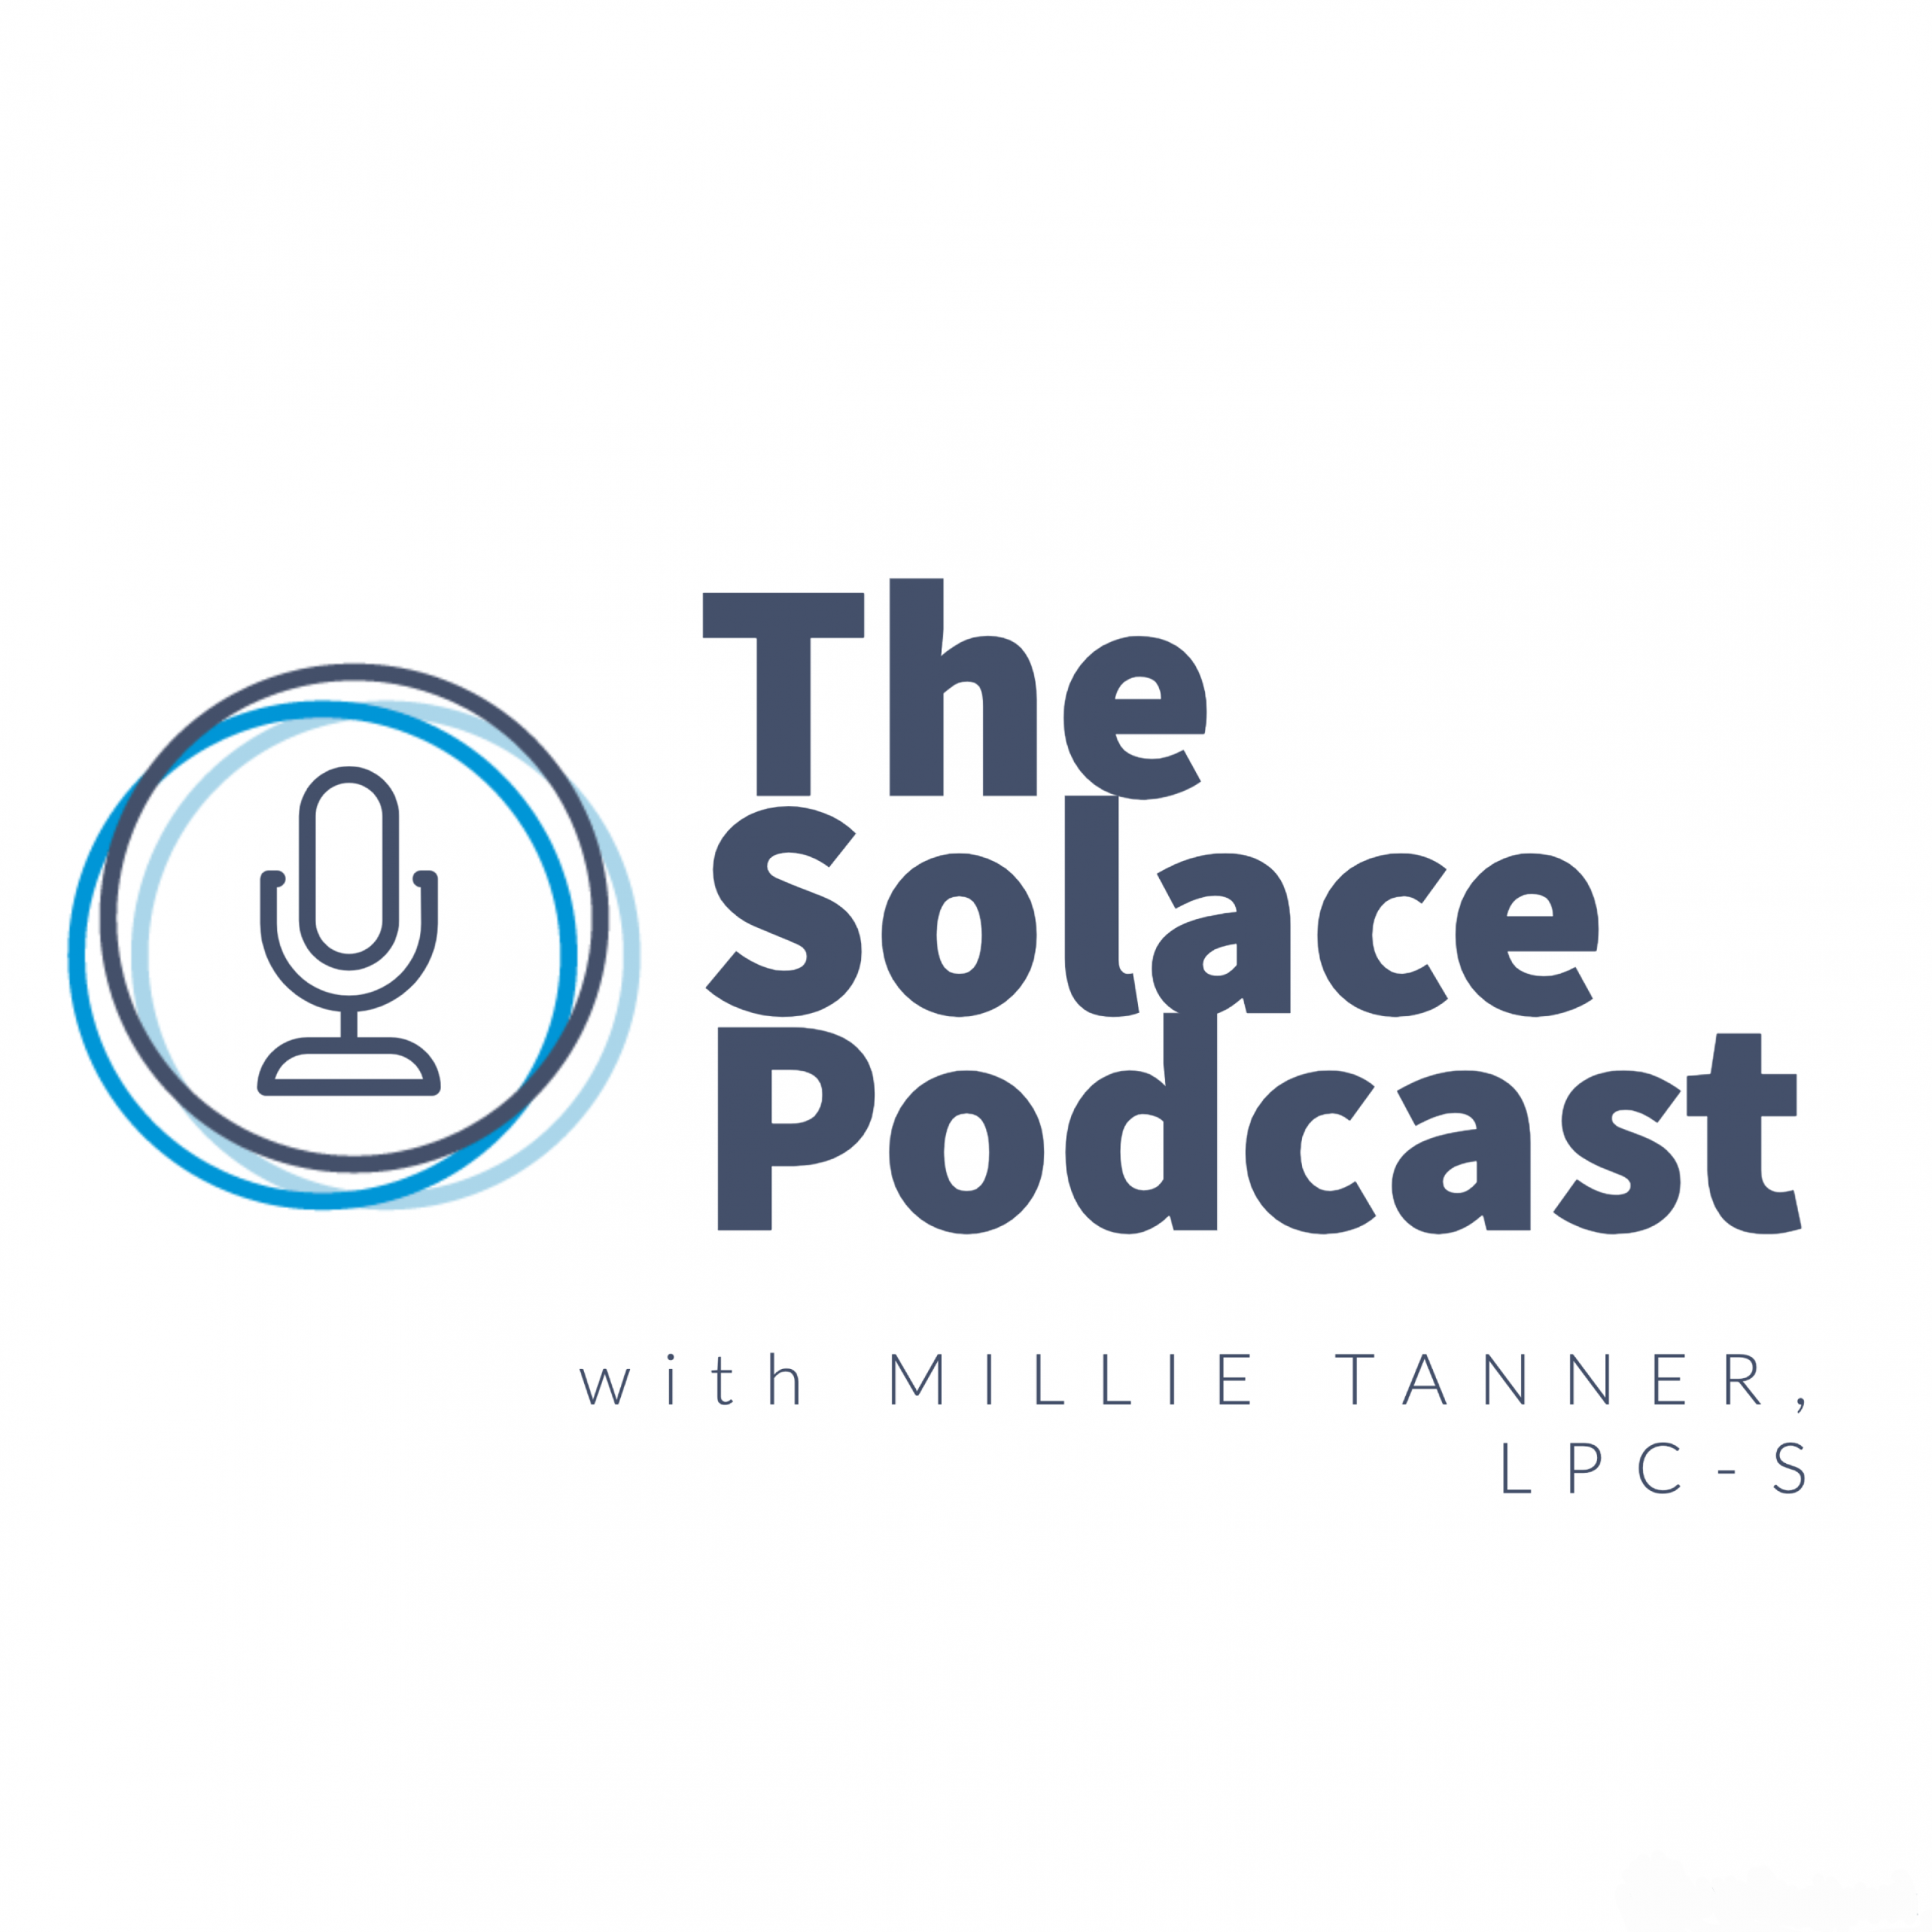 The Solace Podcast